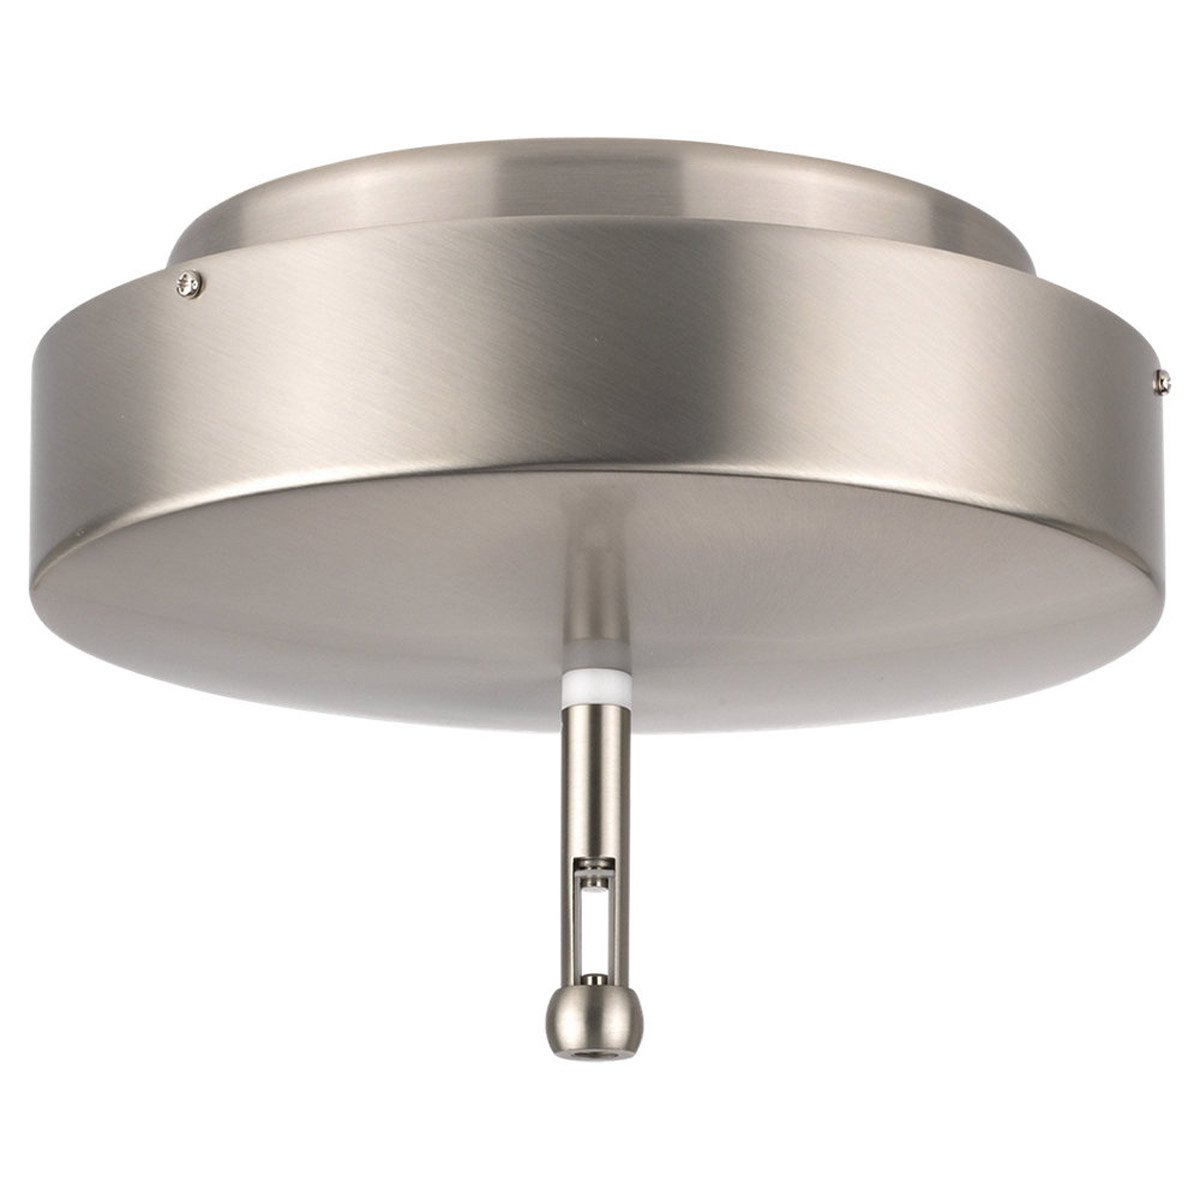 Sea Gull Lighting RTx Surface Mount Power Feed with Transformer in Brushed Stainless 95305-98